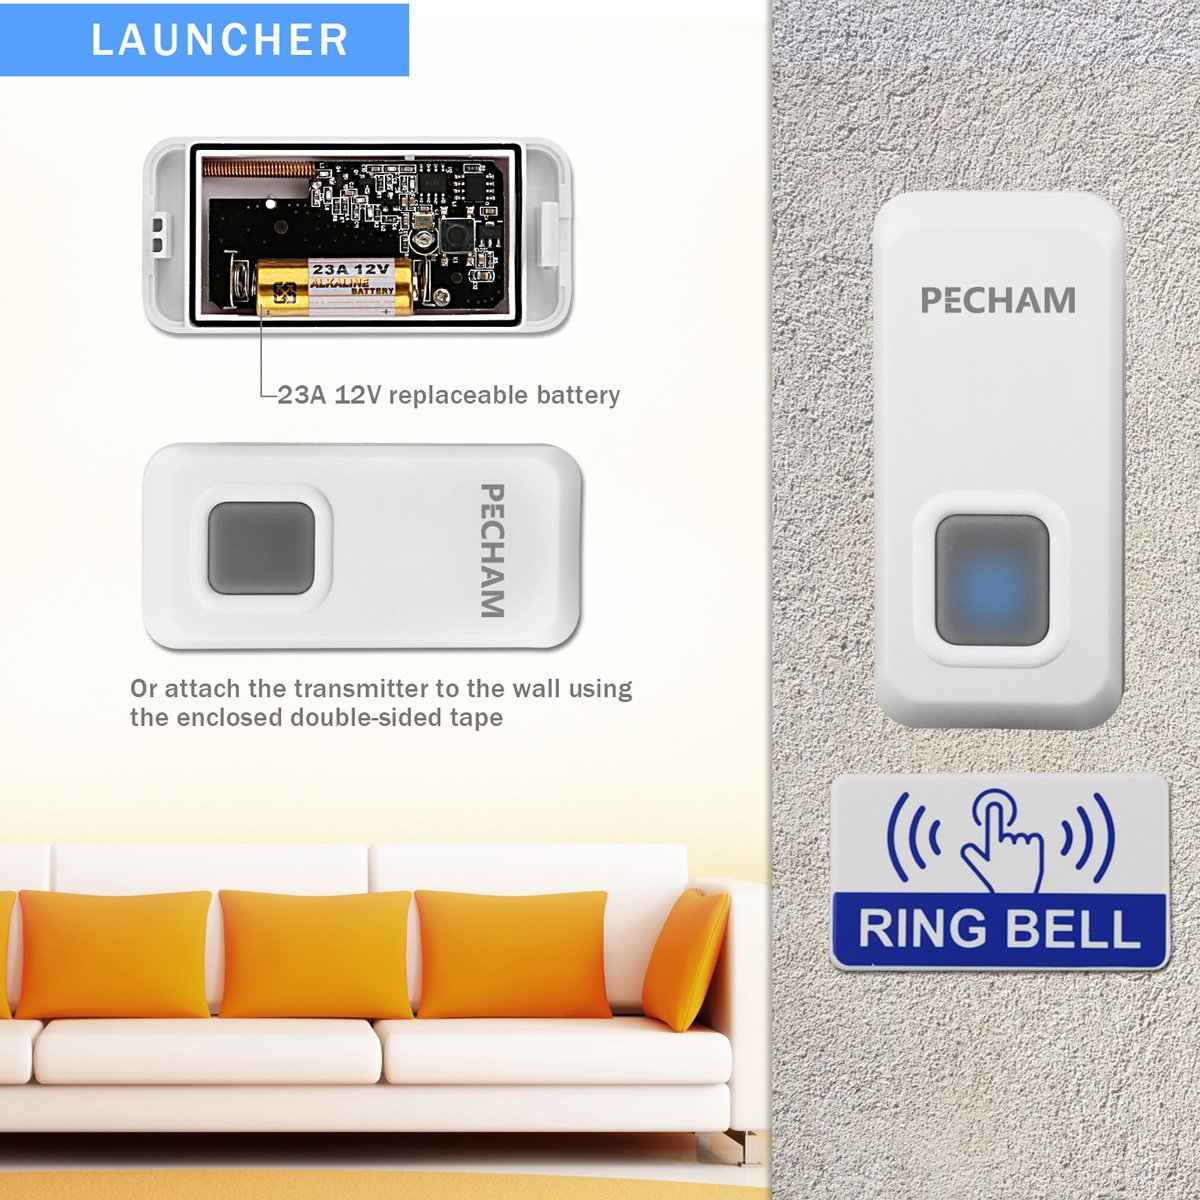 PECHAM Wireless Doorbell Chime Kit Waterproof Remote Button with Receiver 55 Chimes LED Indicator for Home / Office - White